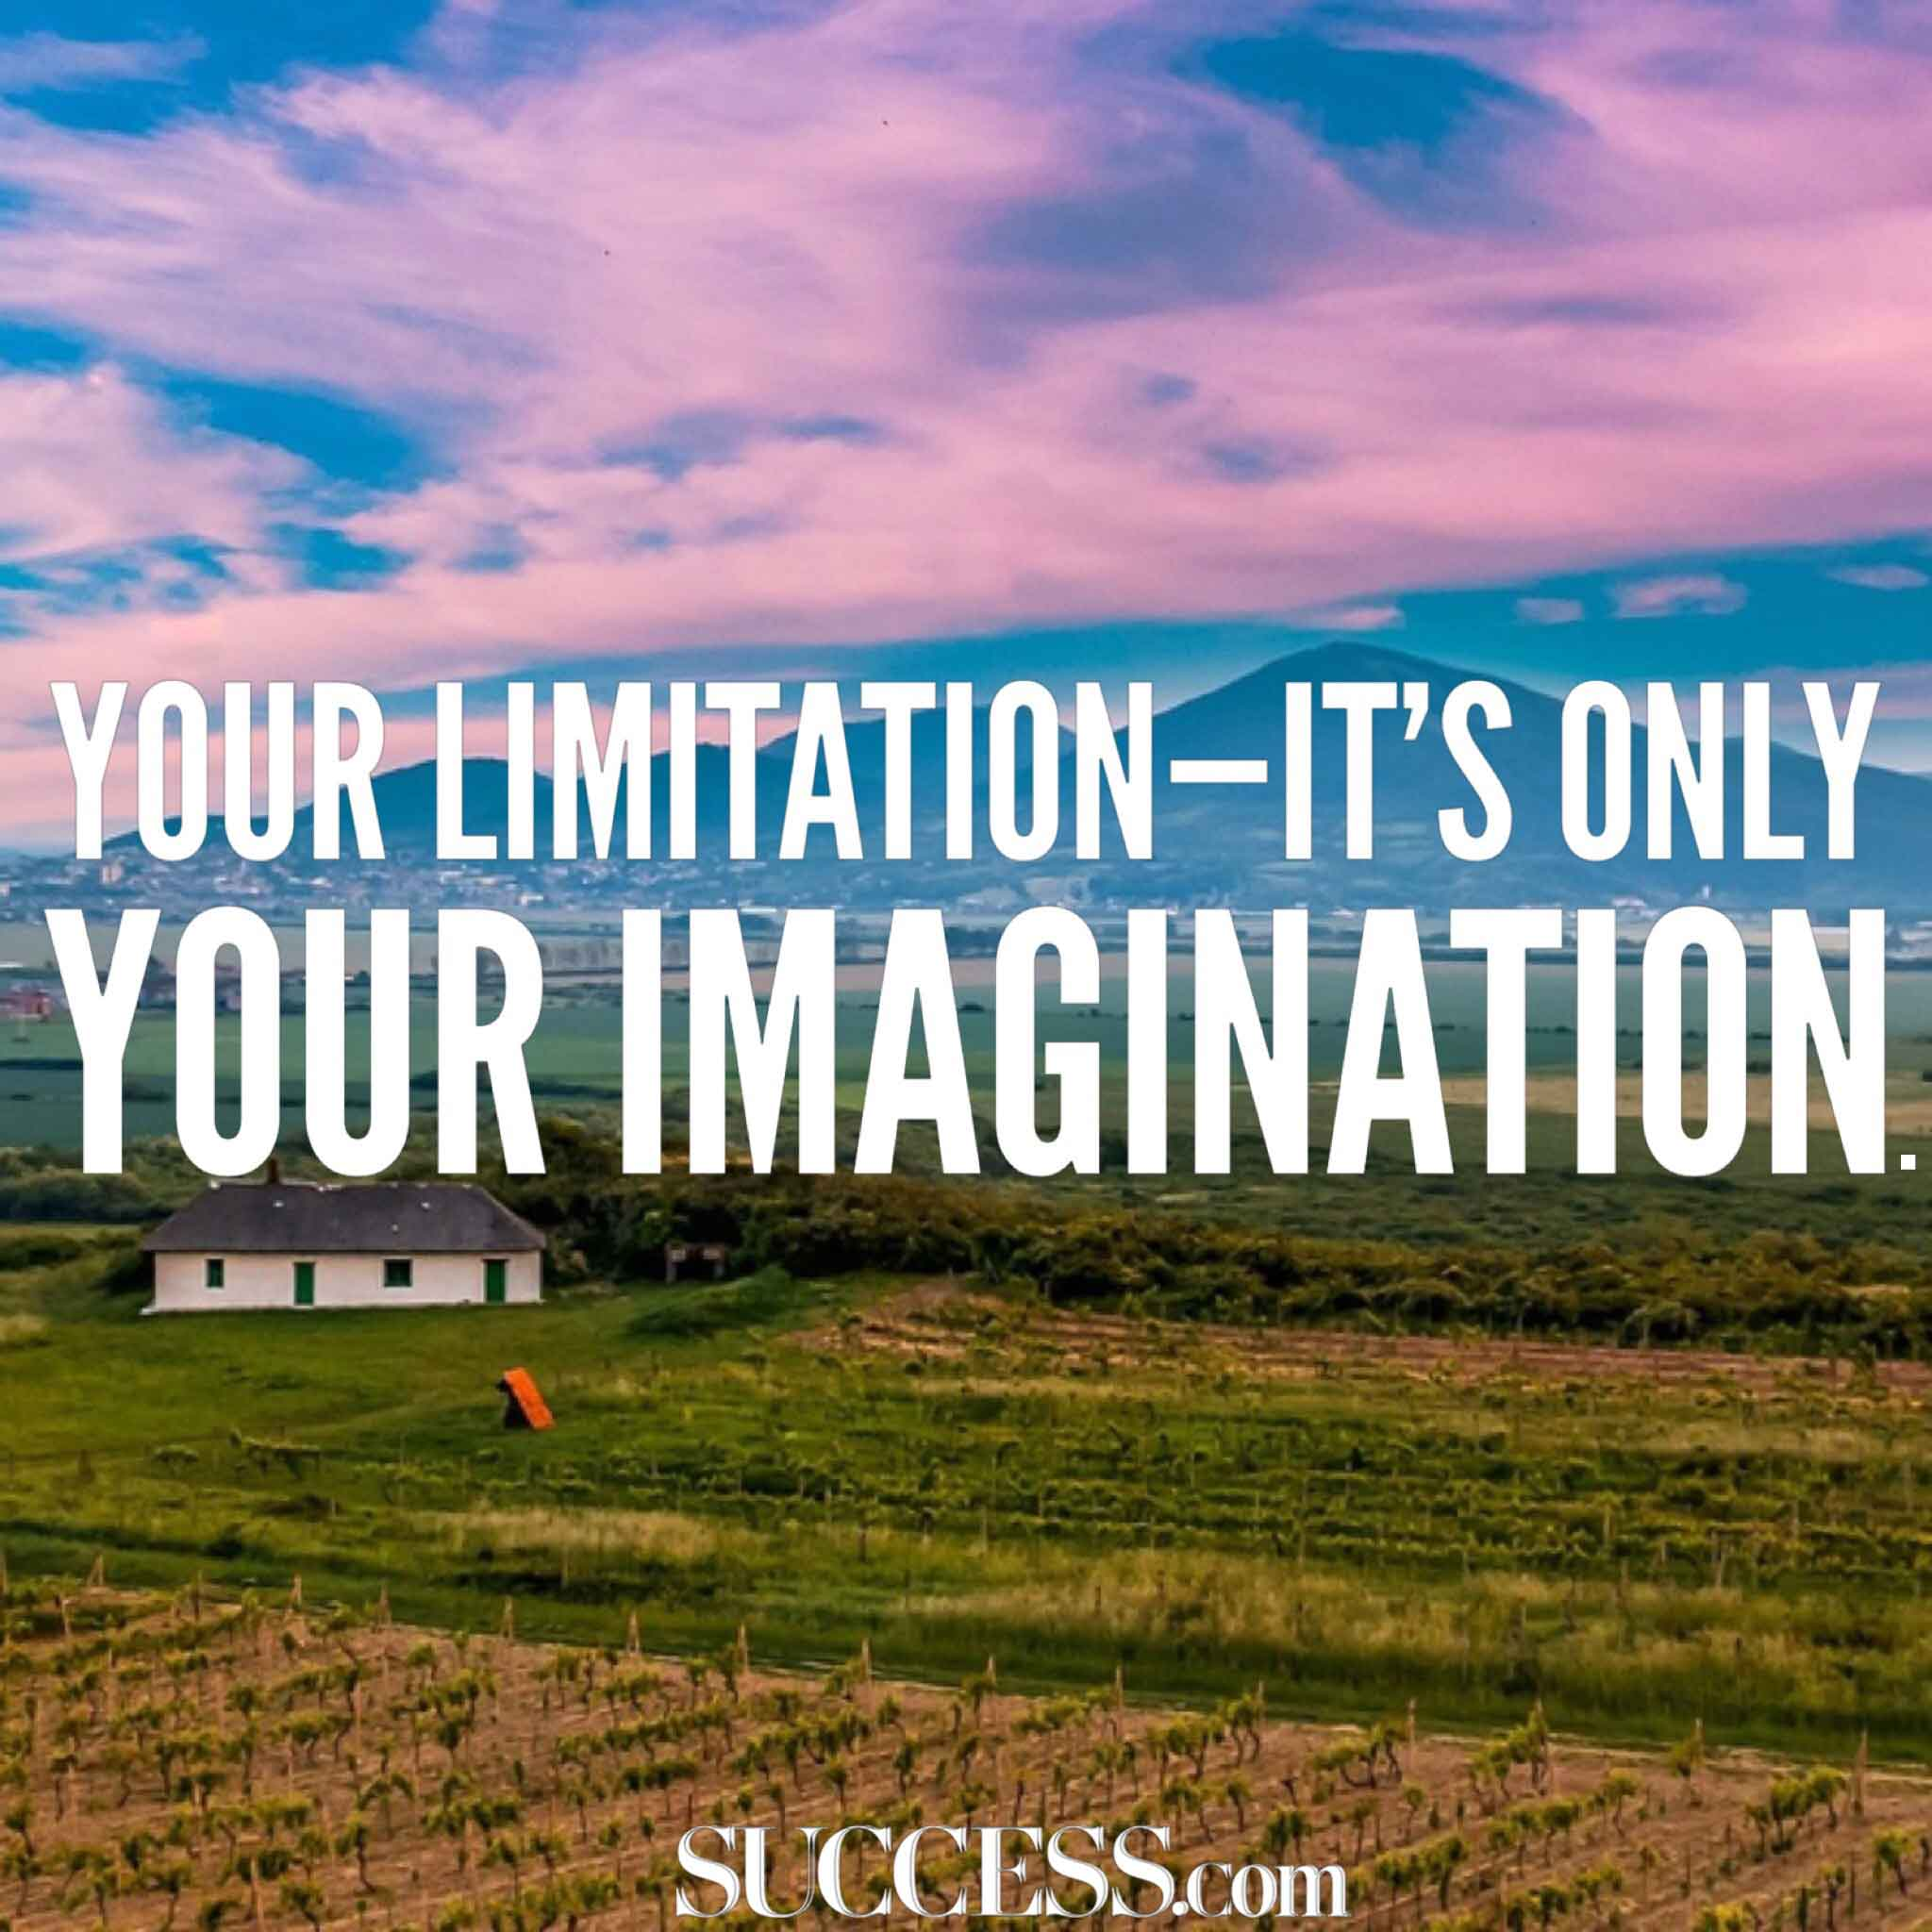 17 Motivational Quotes To Inspire You To Be Successful